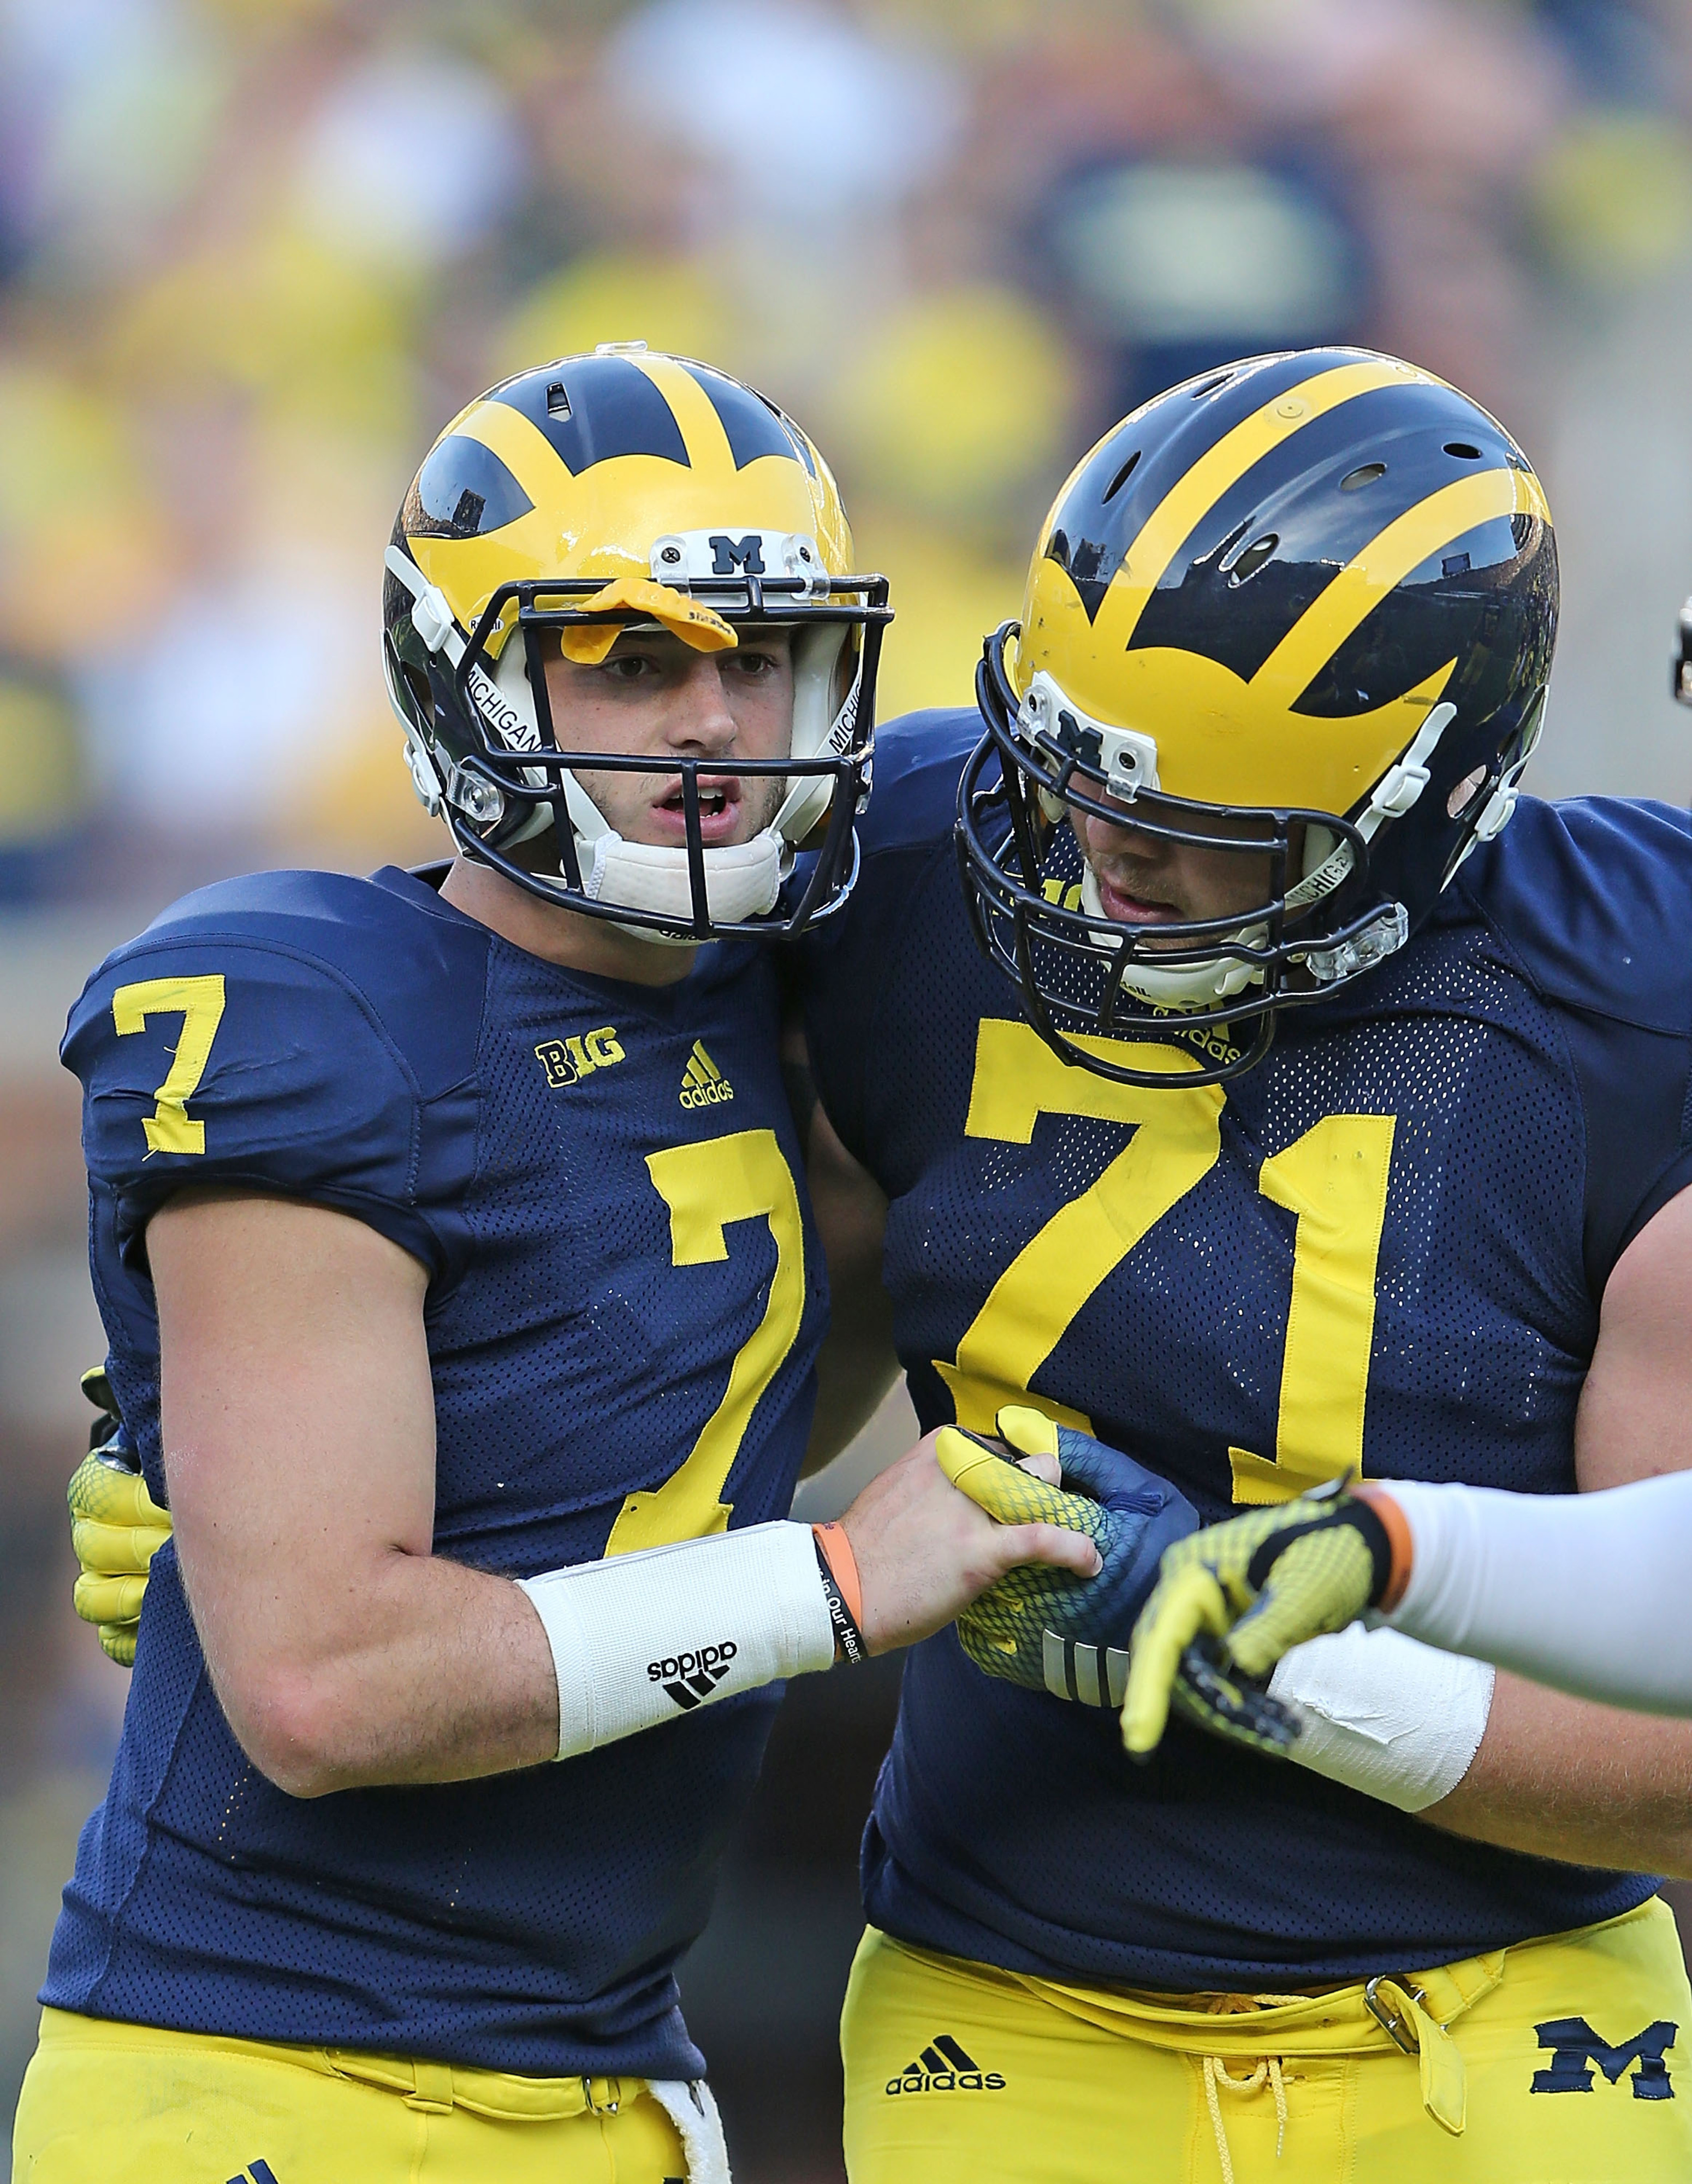 Michigan president criticizes handling of Shane Morris concussion